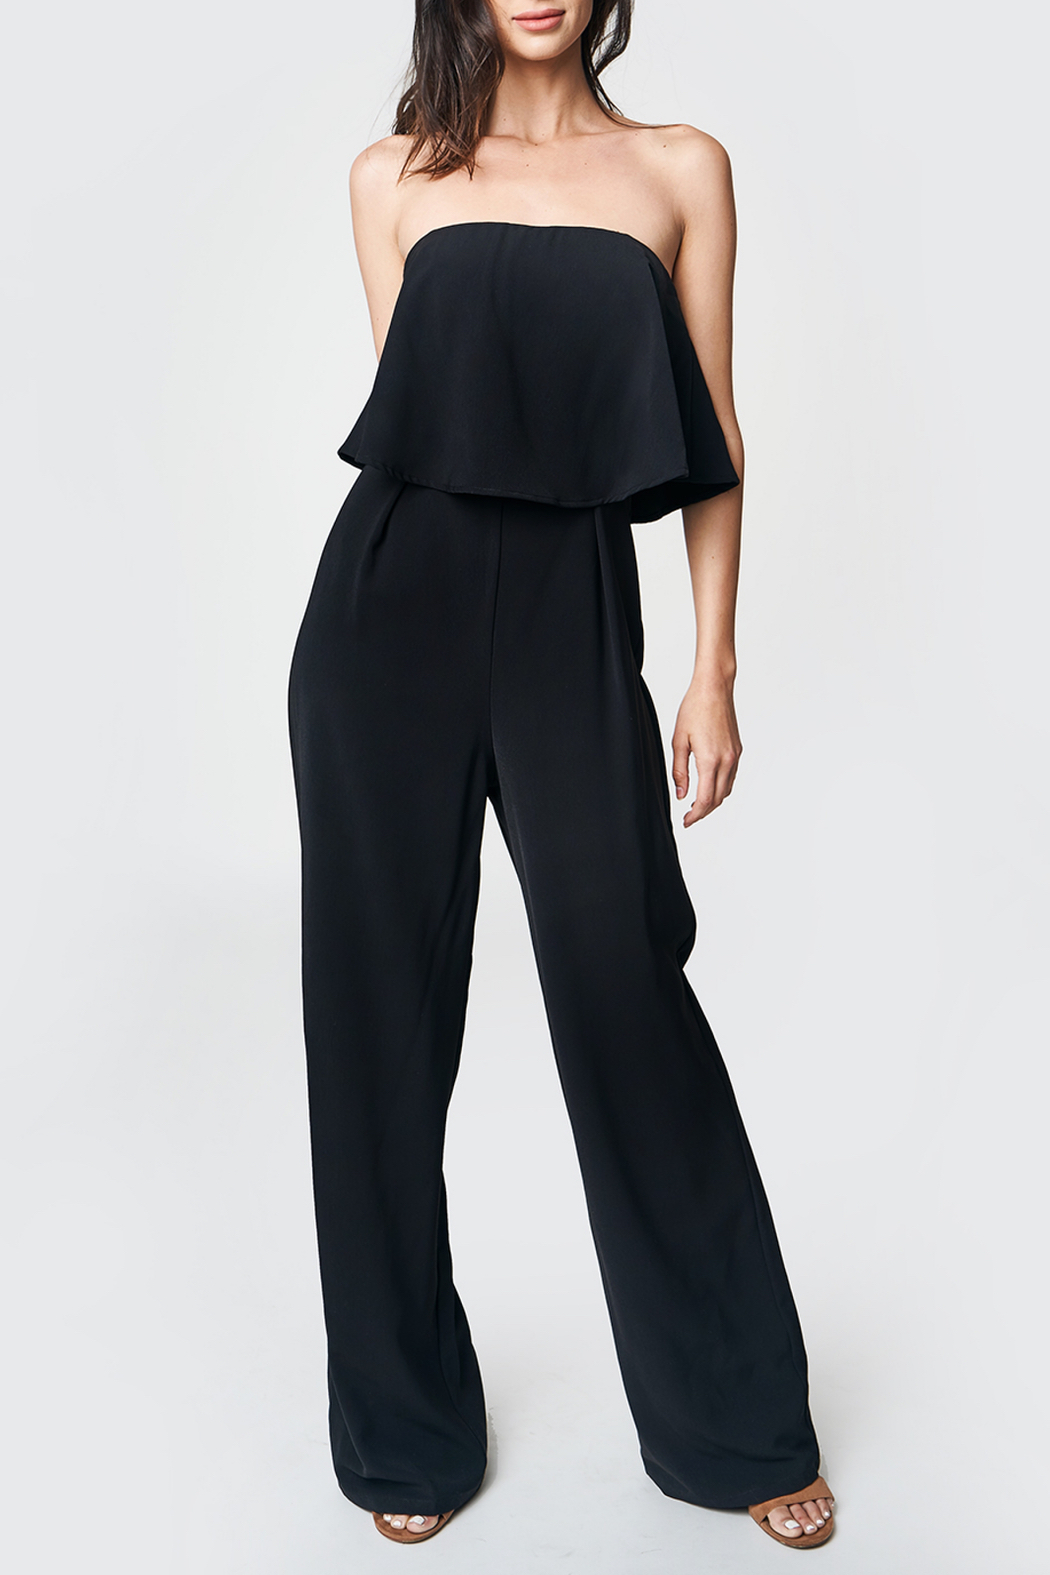 Sugarlips Emmaly Strapless Jumpsuit - Front Full Image